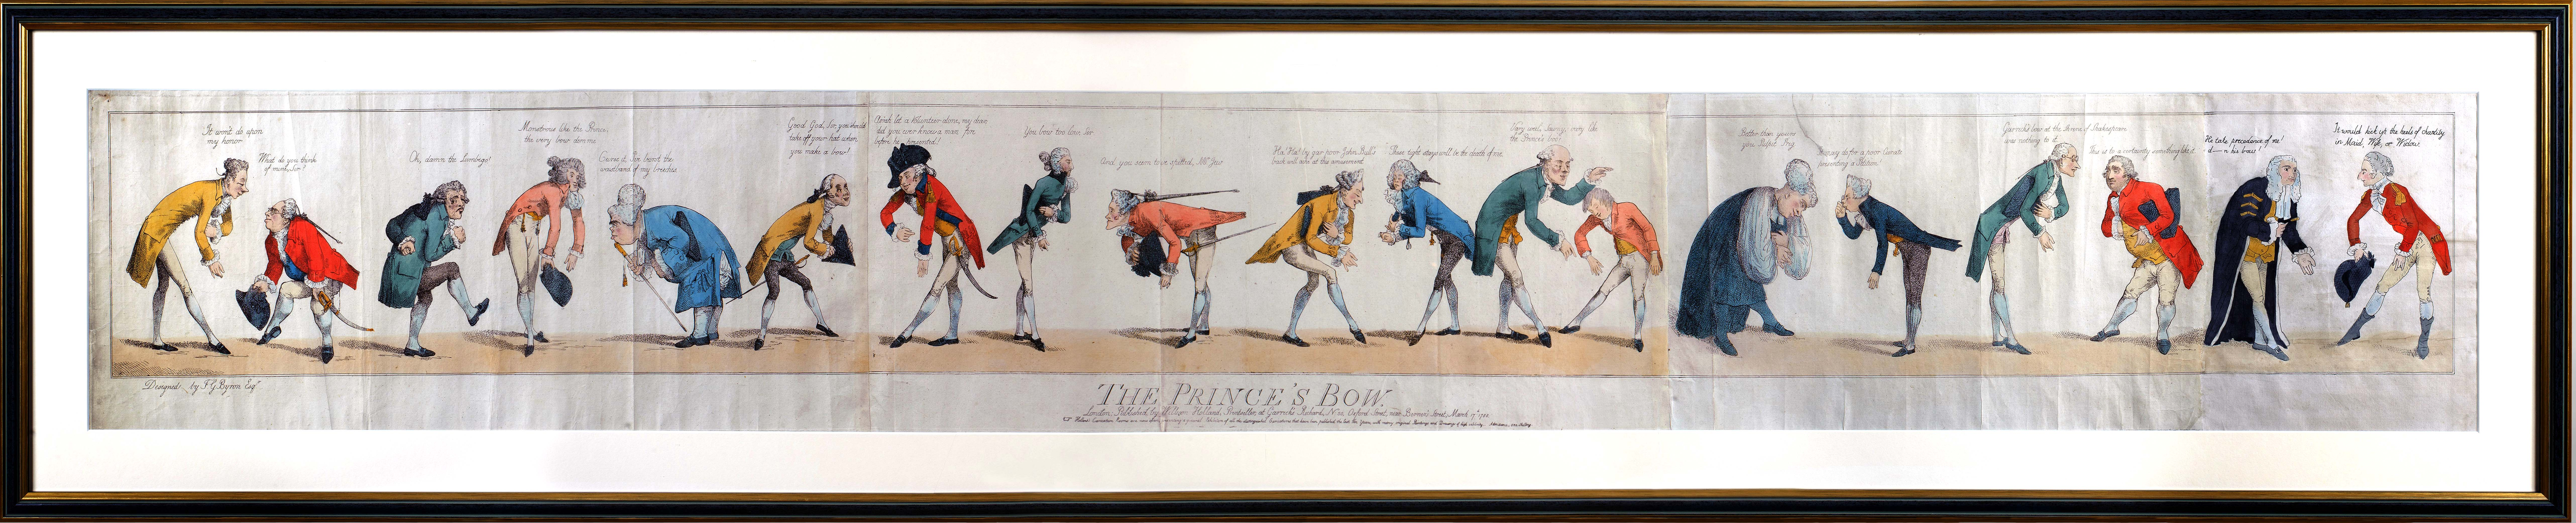 Important 6ft-Long Engraving Lampooning the Prince of Wales On Sale at Chester A